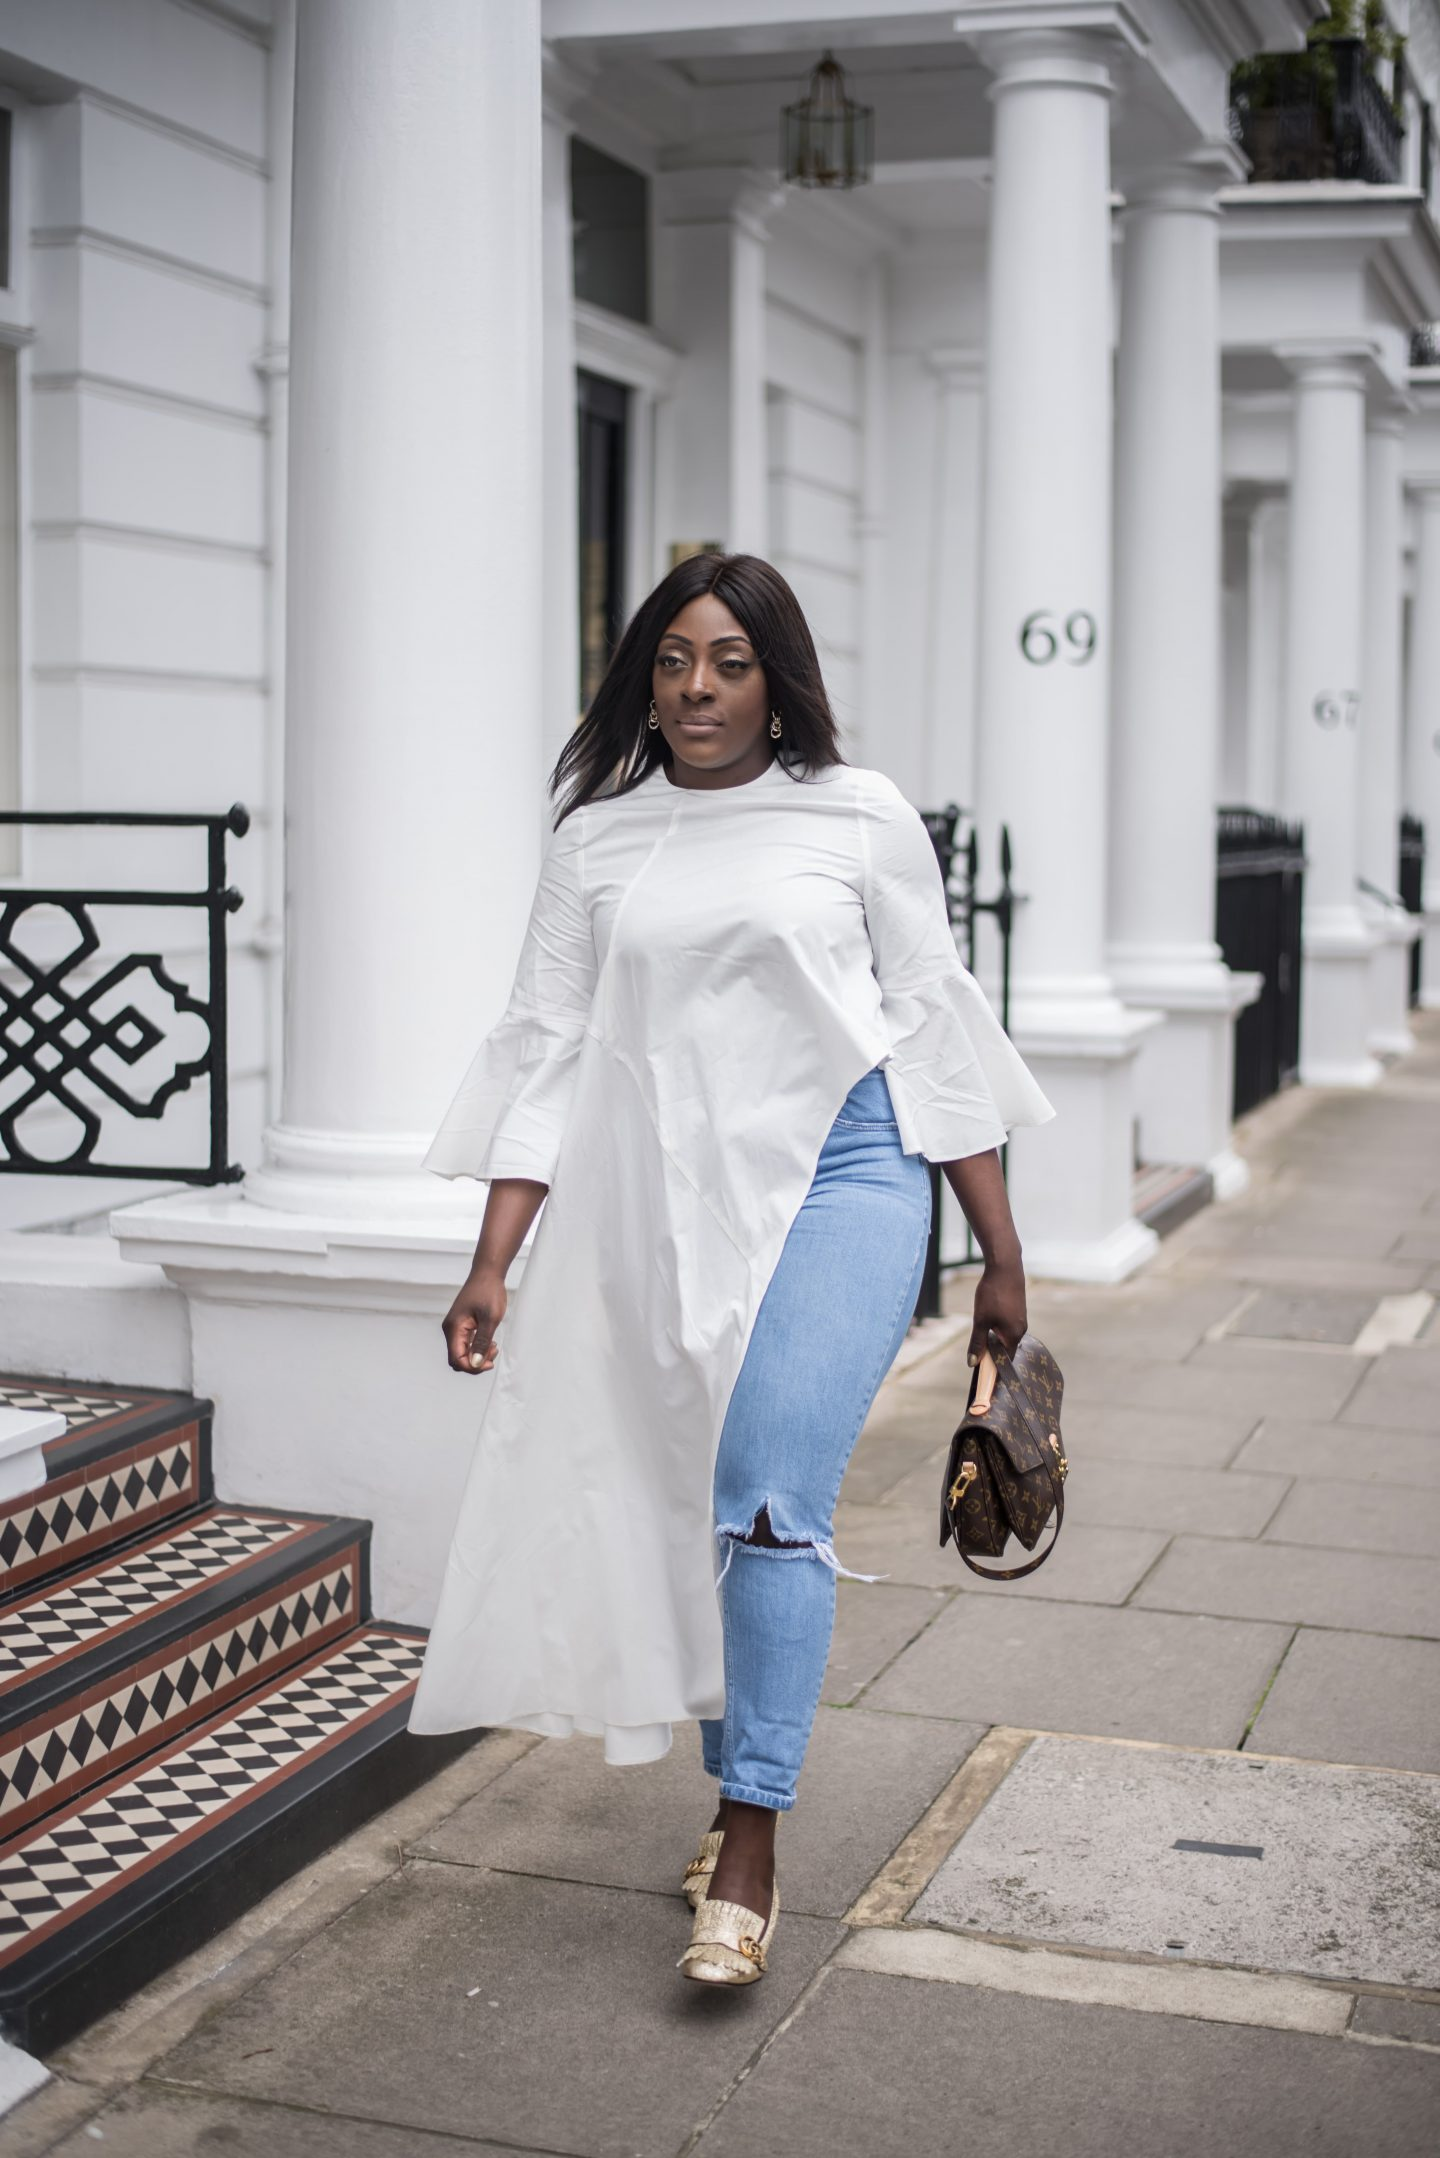 ASOS White Top, ASOS Jeans, Gucci Marmot Loafers and Pochette Metis 3 - Style and the Sass